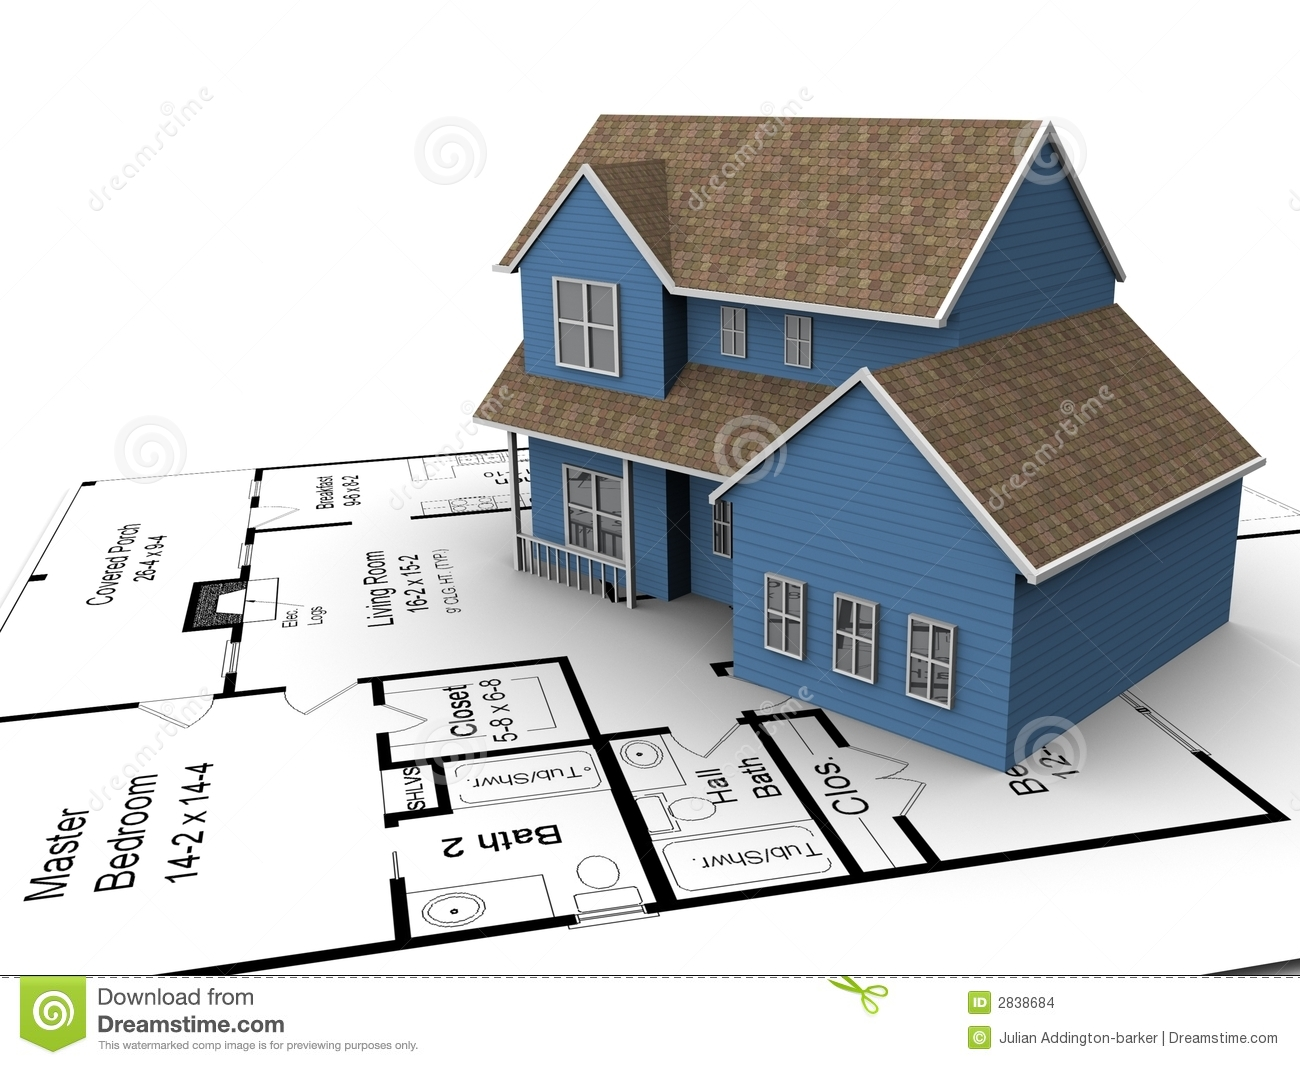 New house plans stock illustration image of design for House construction plans